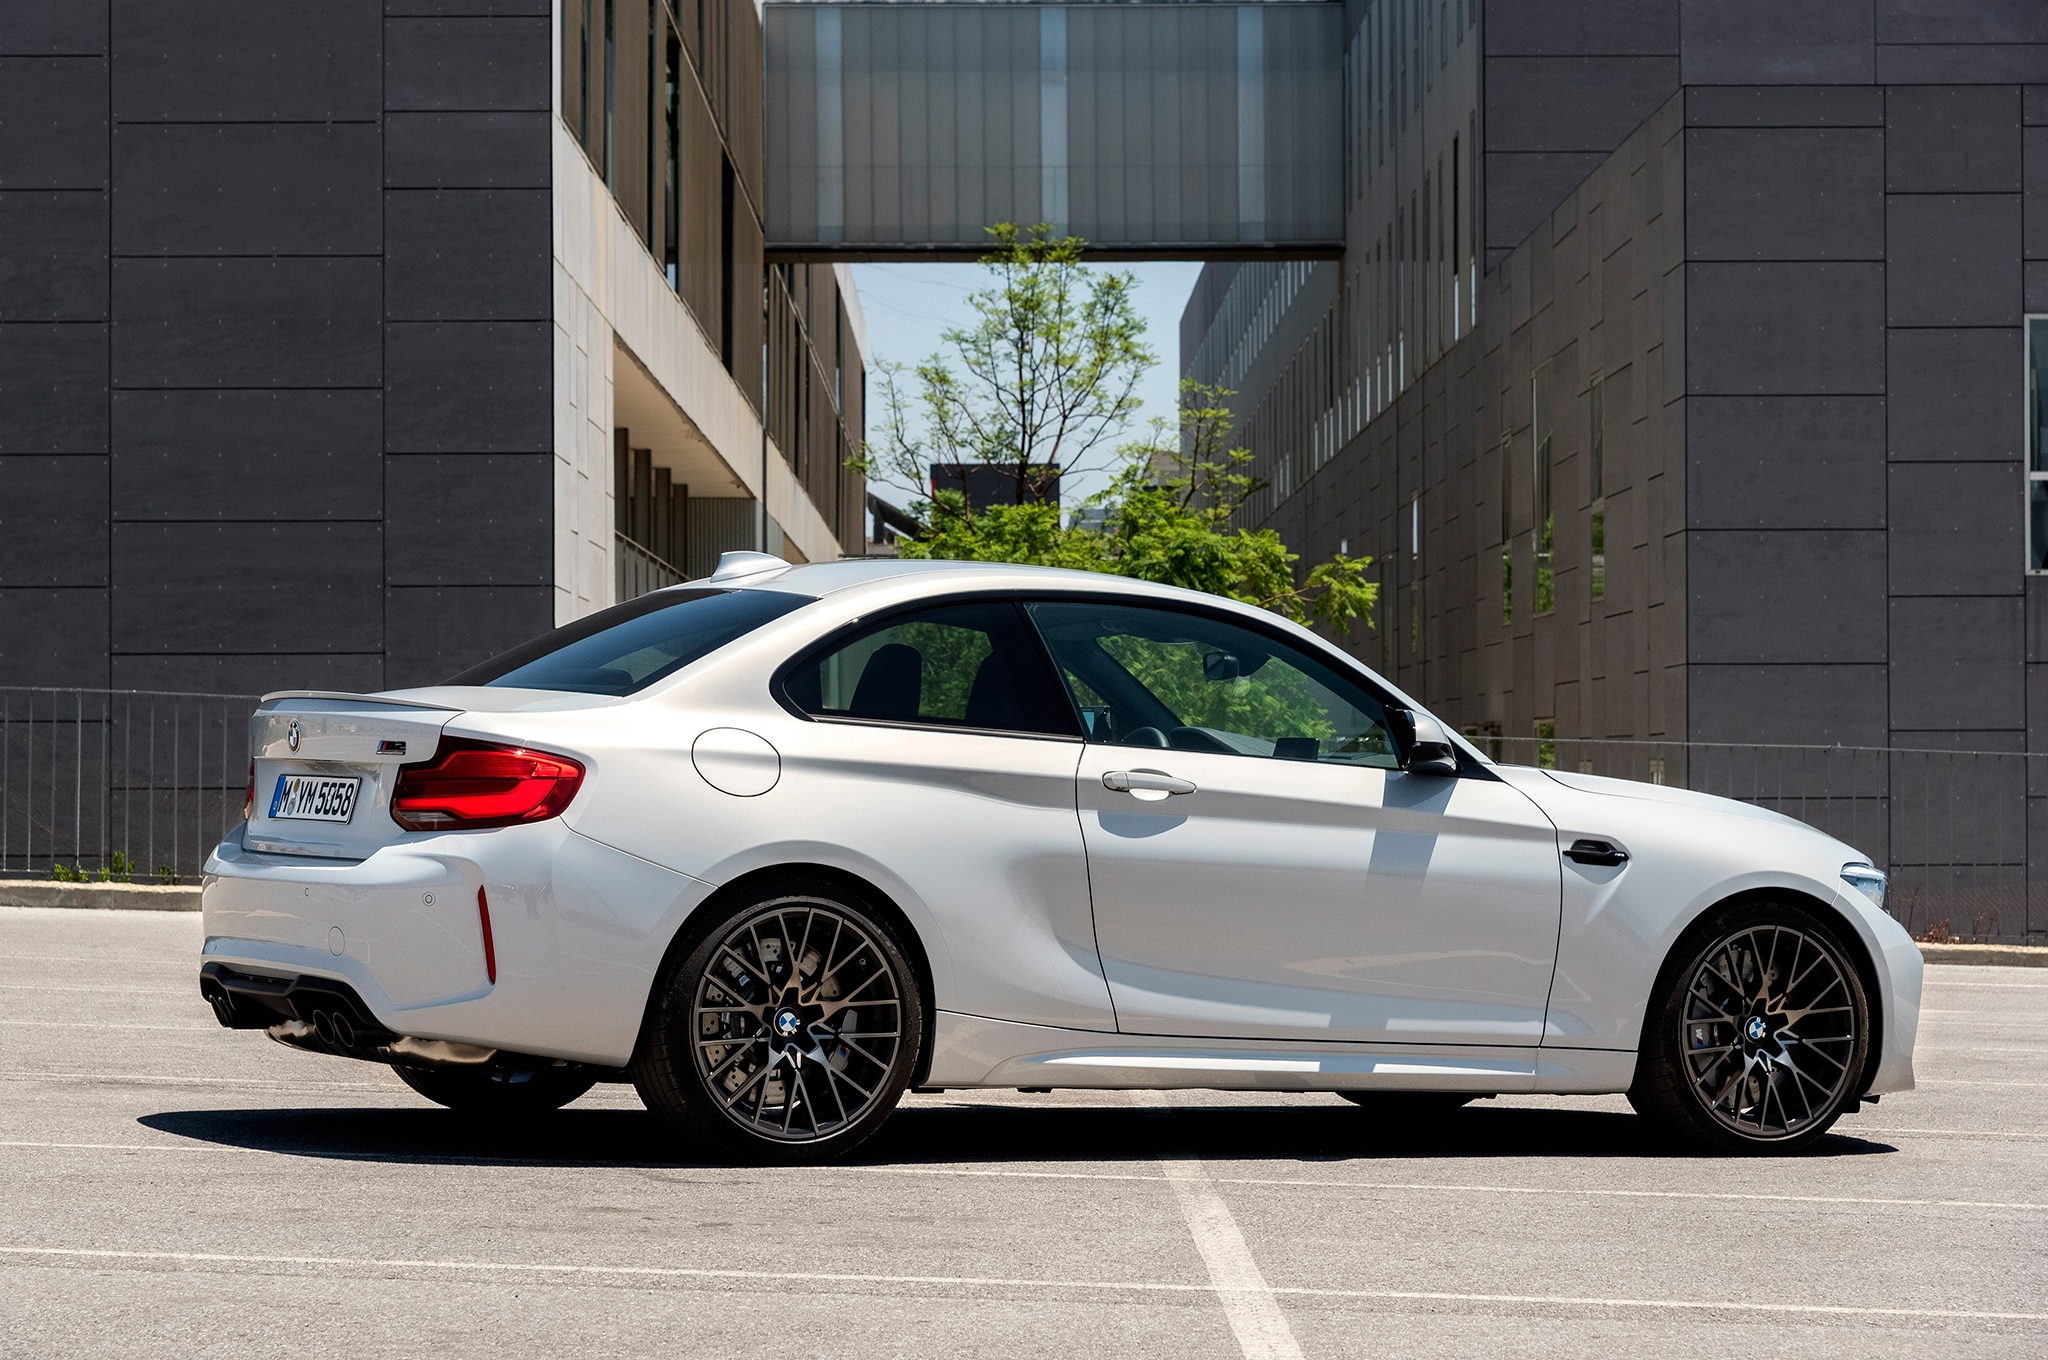 Bmw M2 Series >> First Look: 2019 BMW M2 Competition | Automobile Magazine